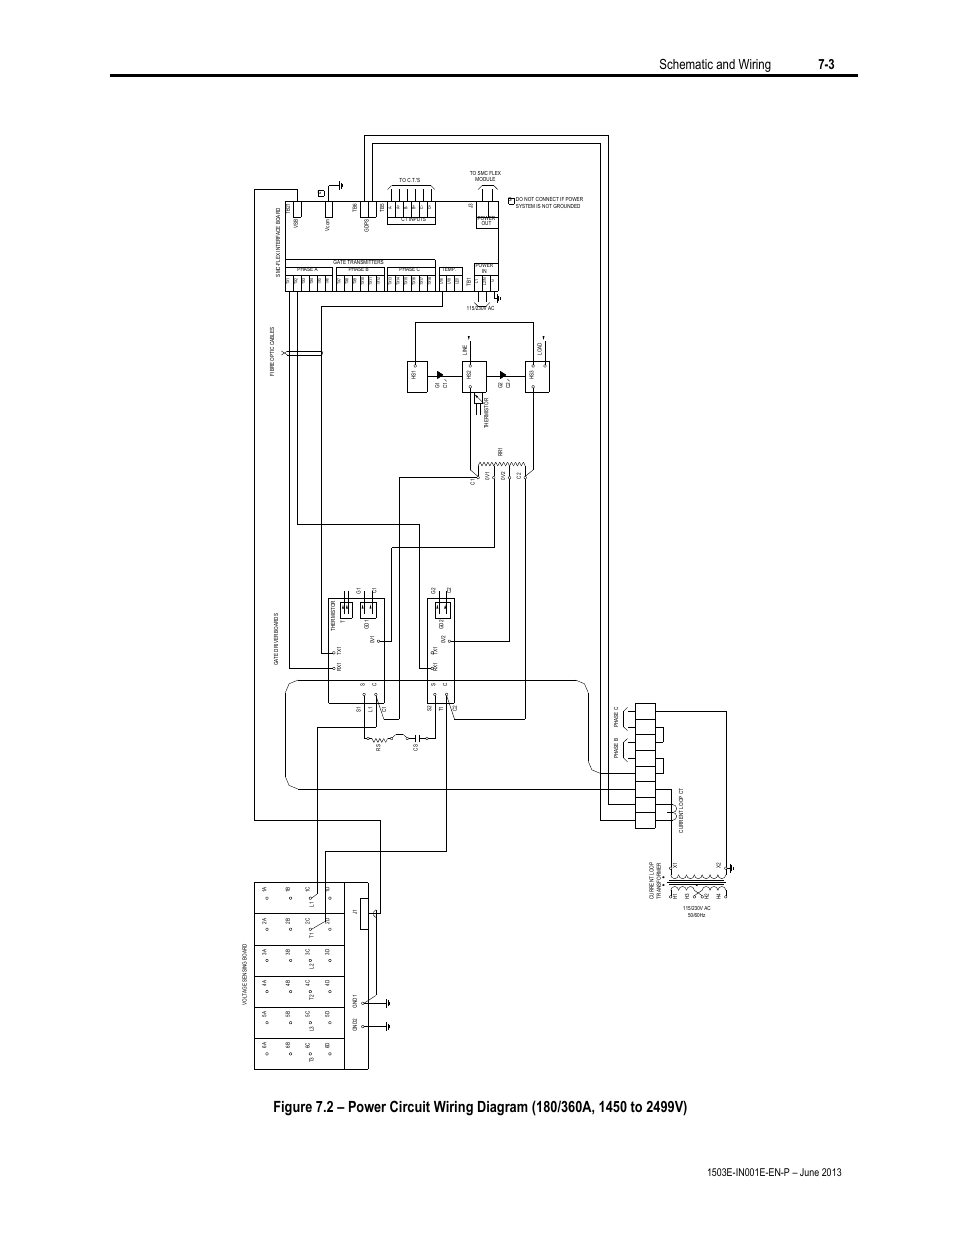 hight resolution of schematic and wiring 7 3 rockwell automation mv smc flex oem components user manual